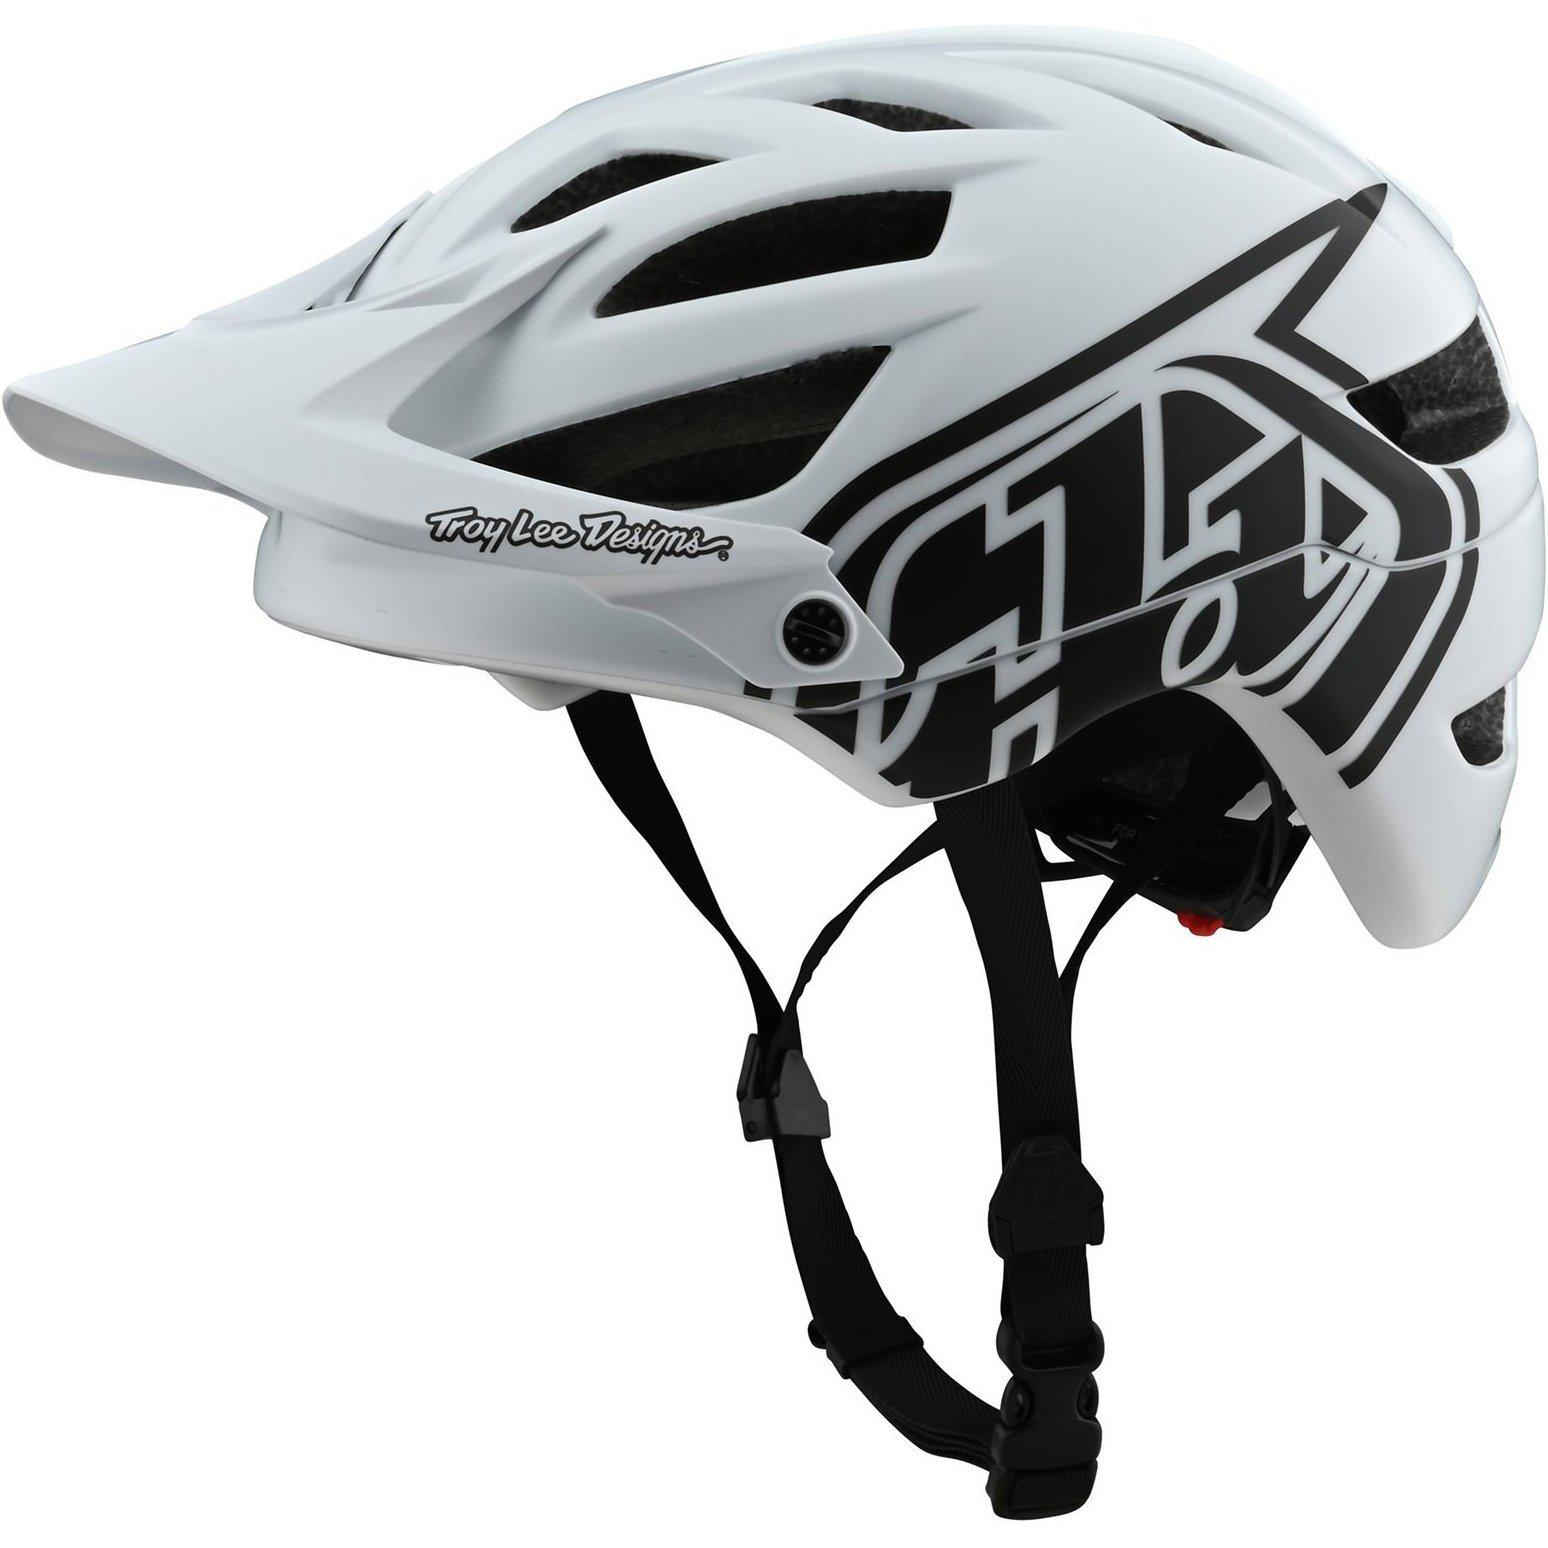 Troy Lee Designs-Troy Lee Designs A1 Drone Helmet-Drone - White/Black-M/L-TLD131097143-saddleback-elite-performance-cycling